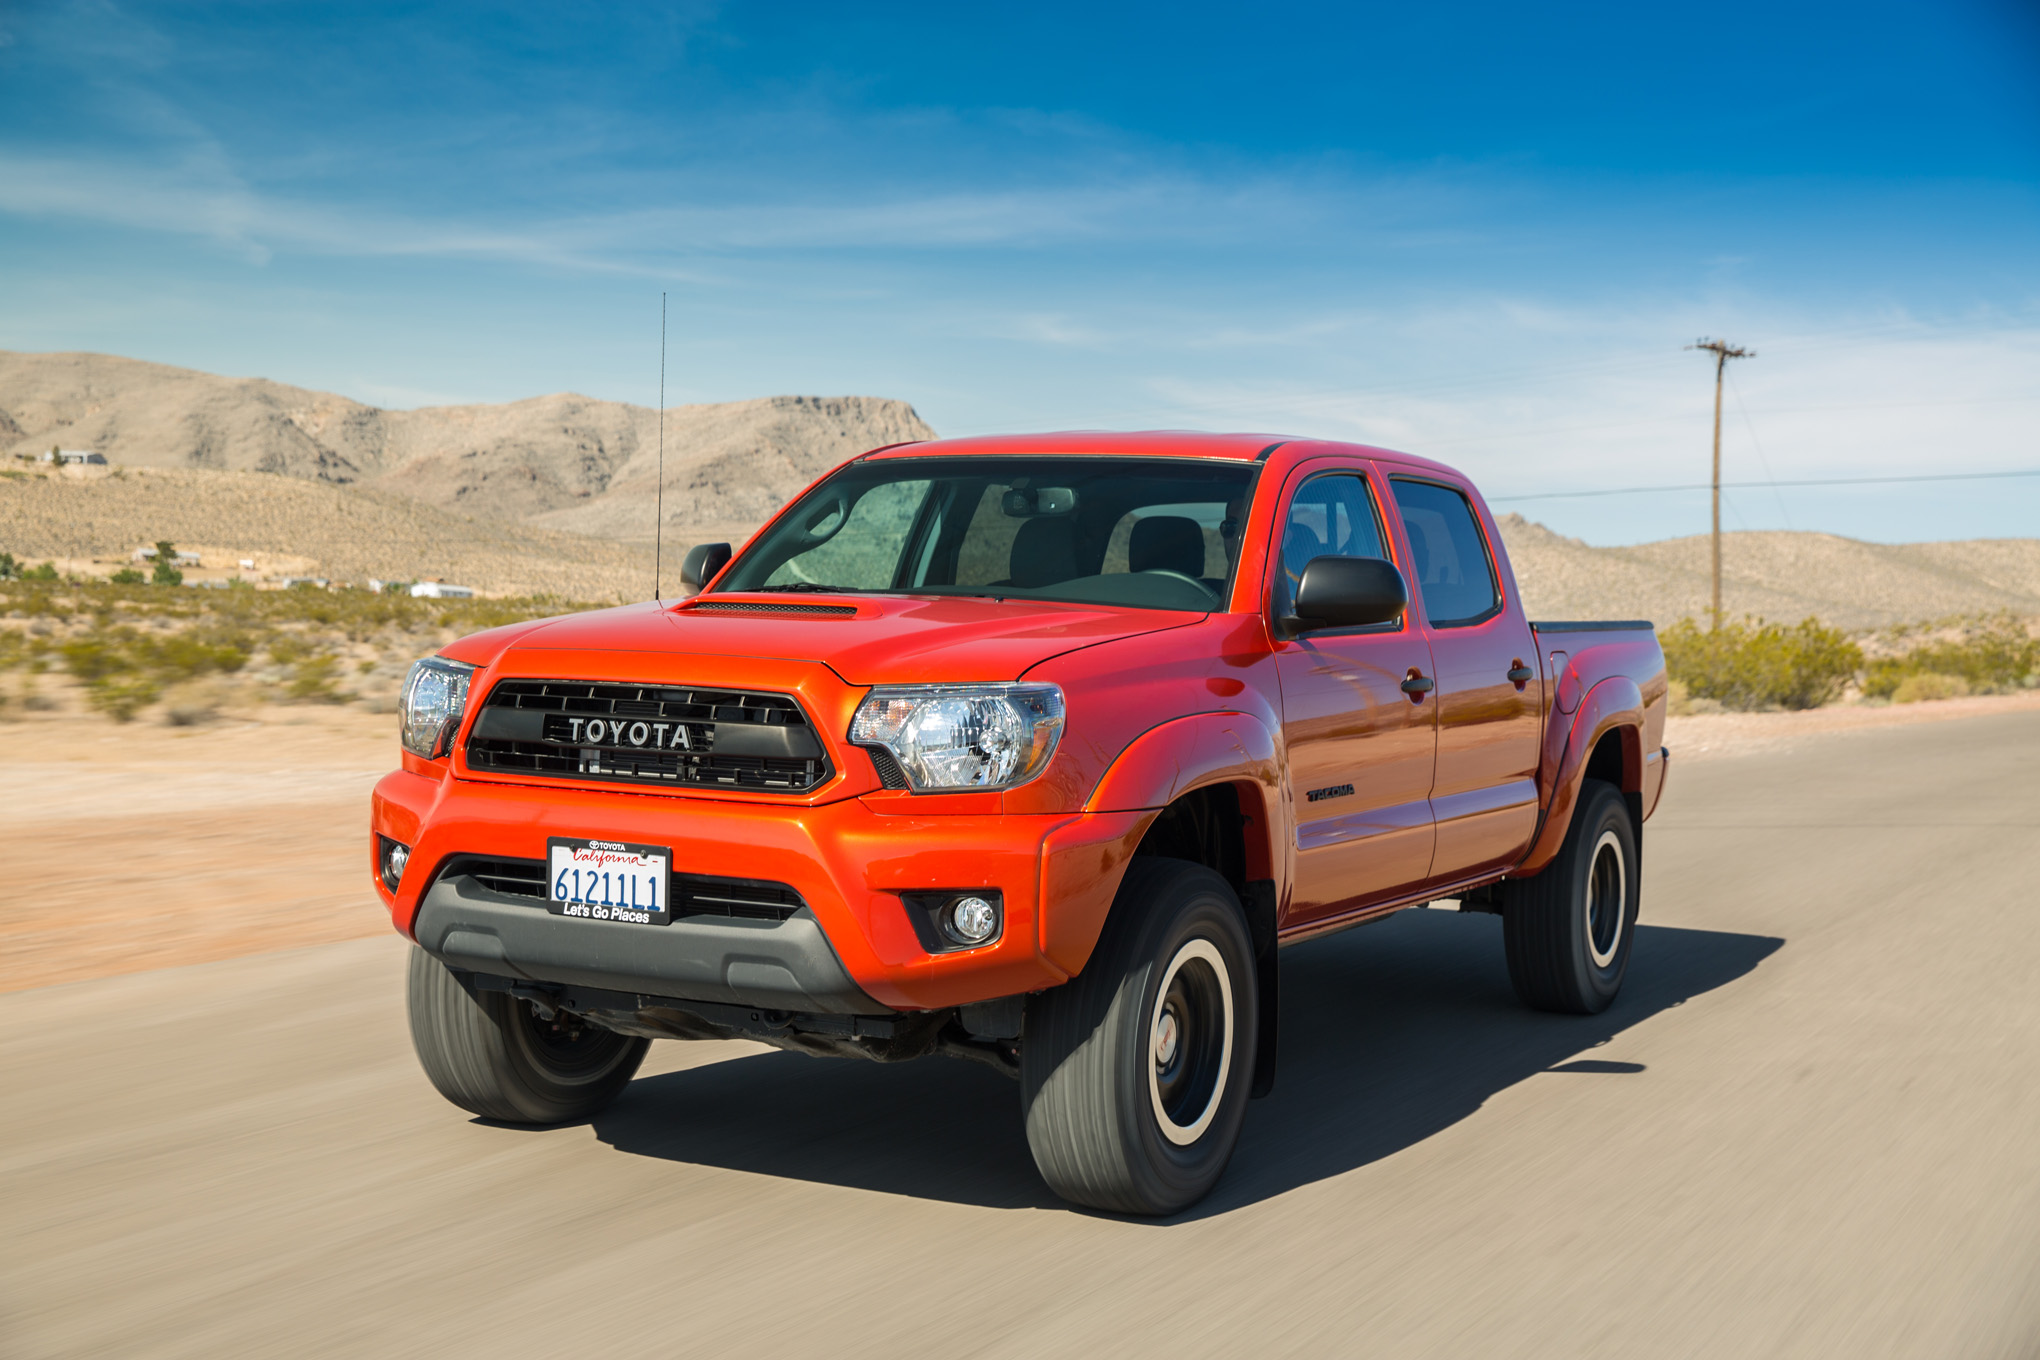 2015 Toyota Tacoma Photos, Informations, Articles - BestCarMag.com